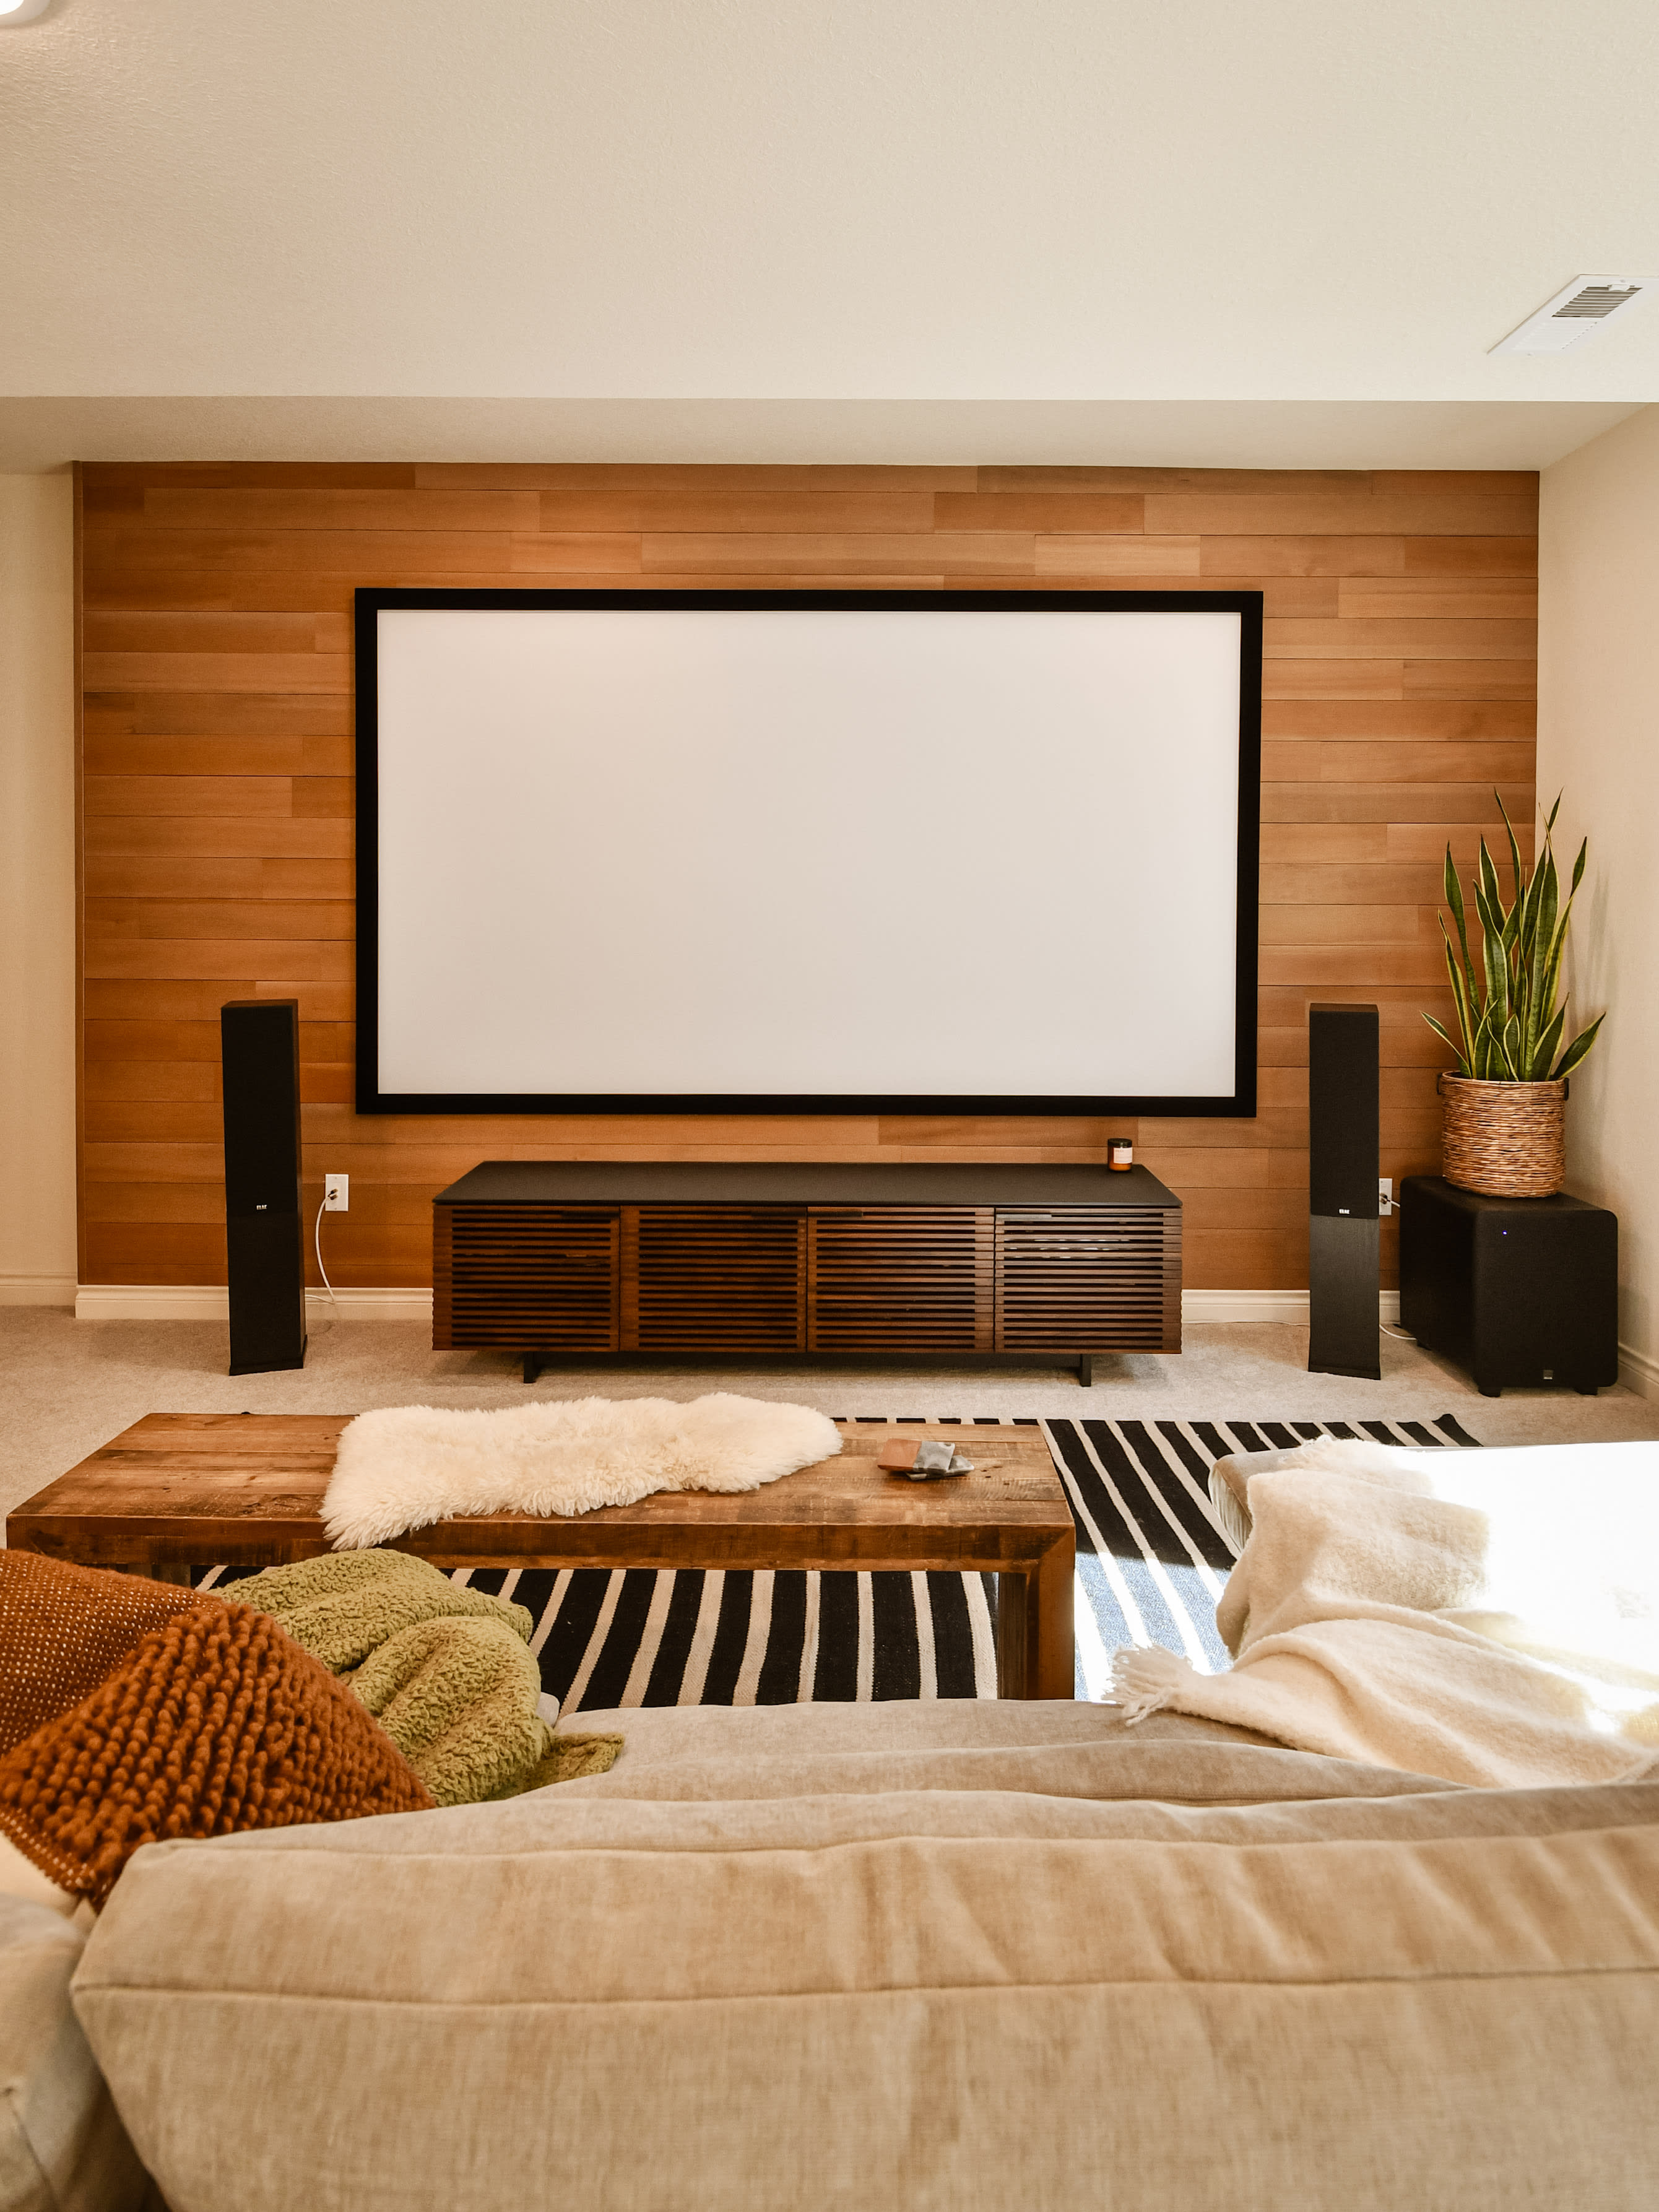 Media room feature wall made with Stikwood peel and stick real wood DIY panels.